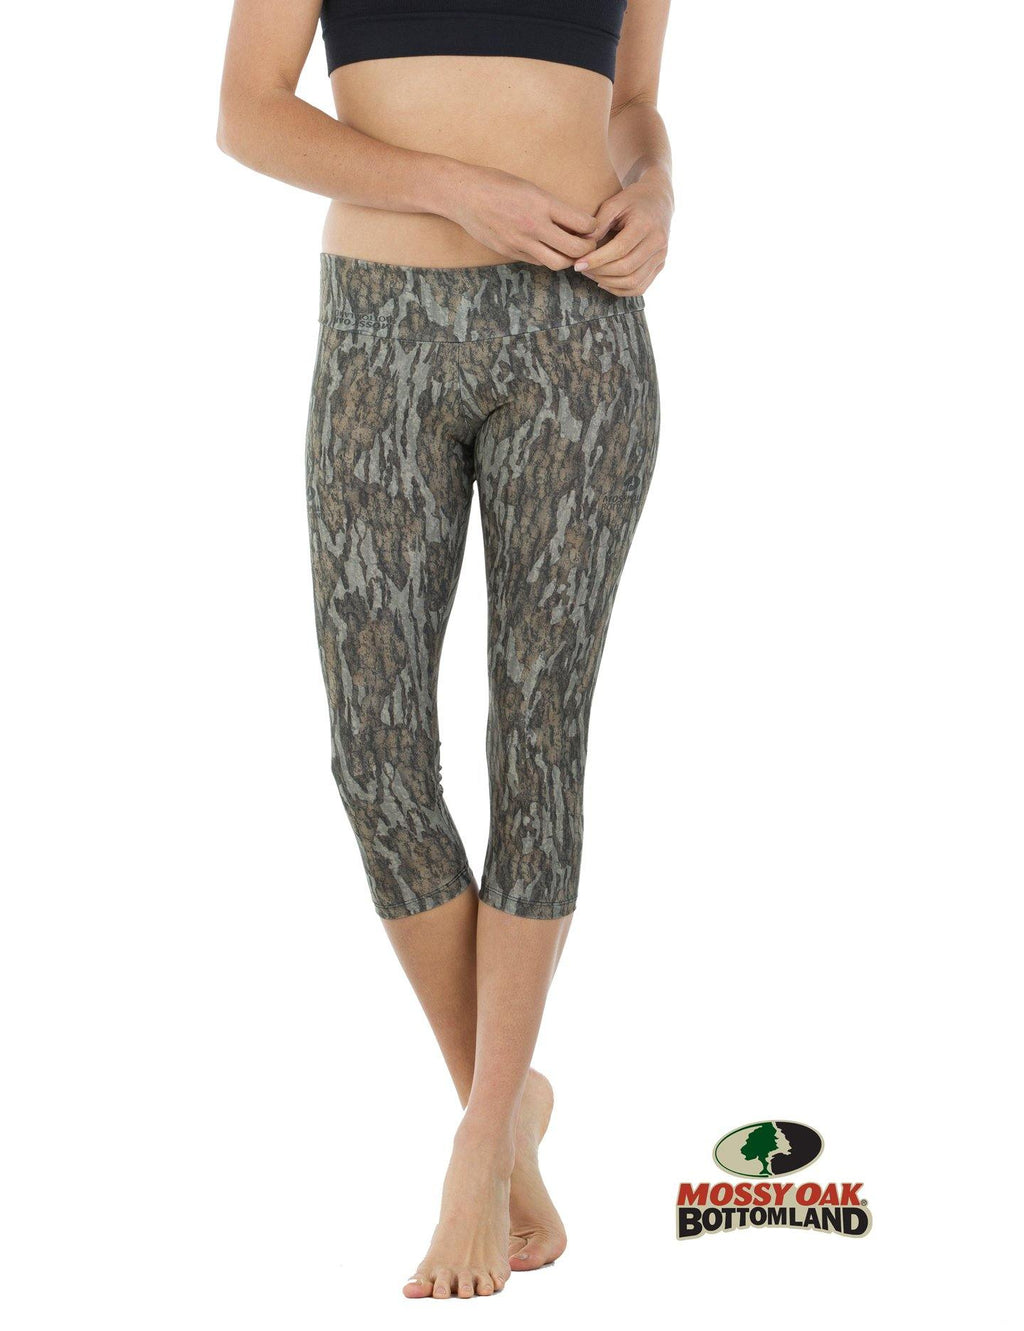 Apsara Leggings Low Waist Capri, Mossy Oak Bottomland